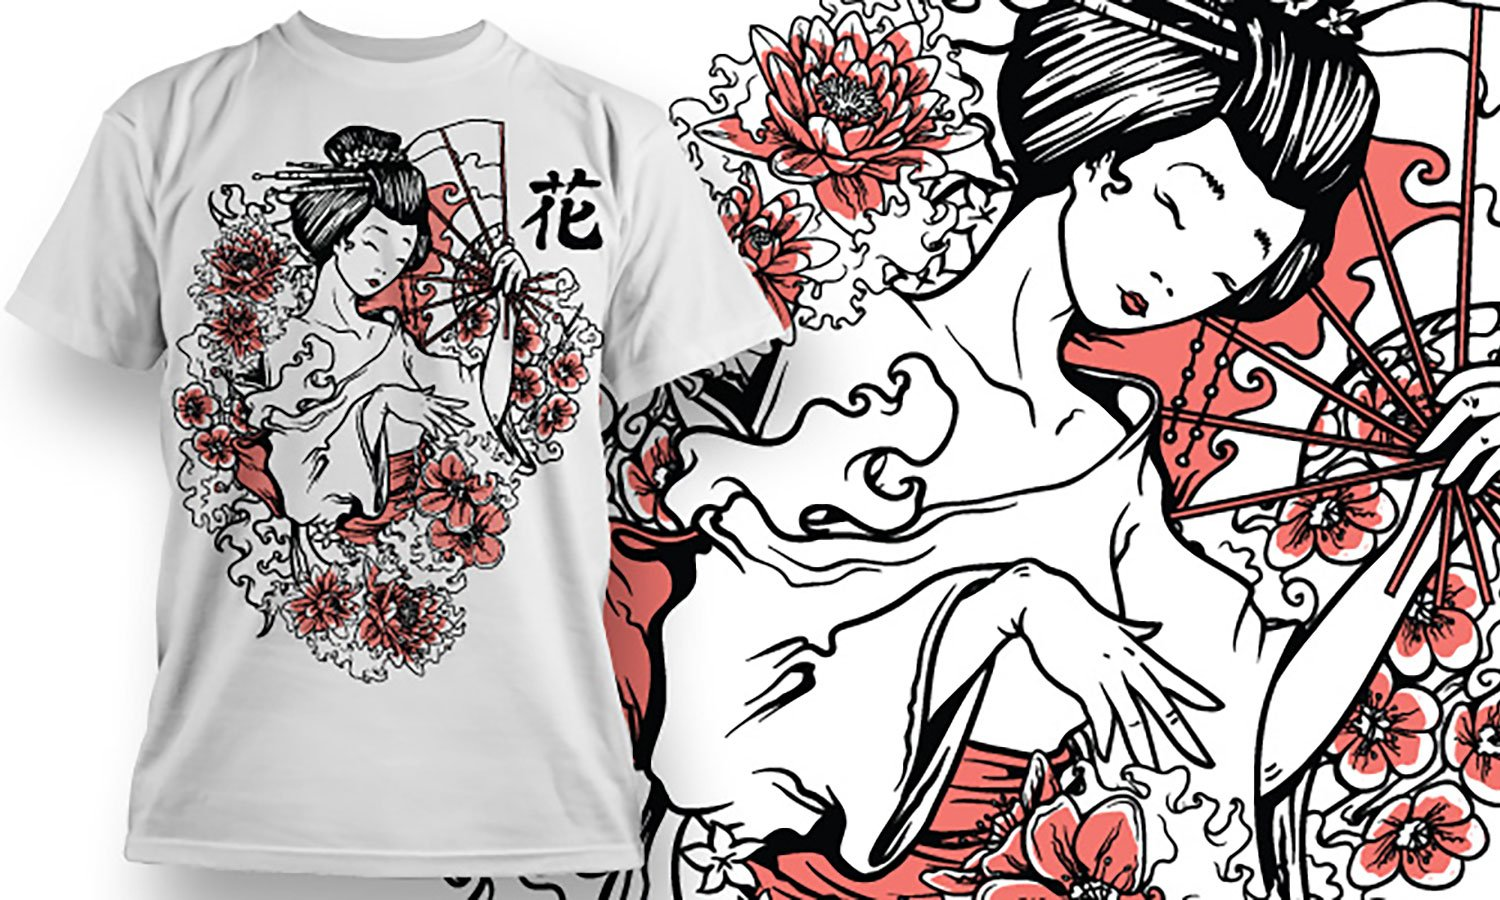 Japan Flower - Printed T-Shirt for Men, Women and Kids - TS332